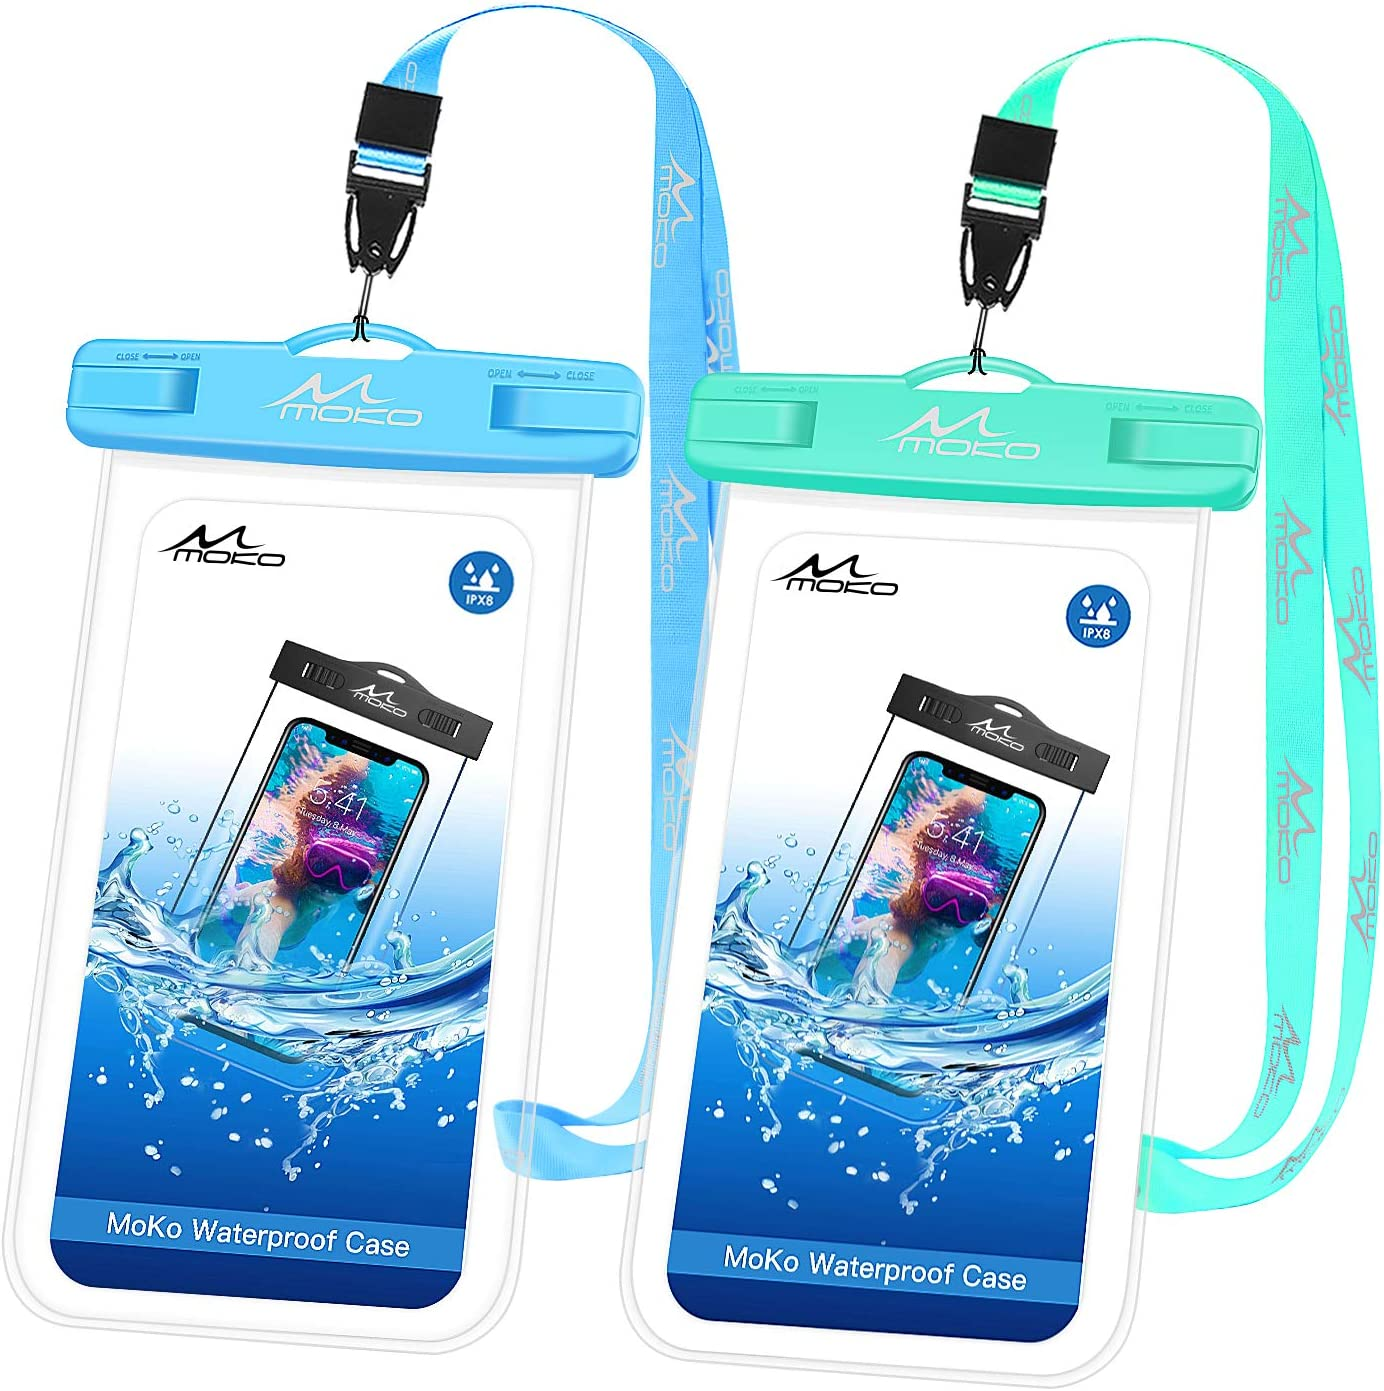 MoKo Waterproof Phone Pouch [2 Pack], Underwater Phone Case Dry Bag with Lanyard Compatible with iPhone 13/13 Pro Max/iPhone 12/12 Pro Max/11 Pro Max, X/Xr/Xs Max, 8/7, Samsung S21/S10/S9, Note 10/9/8